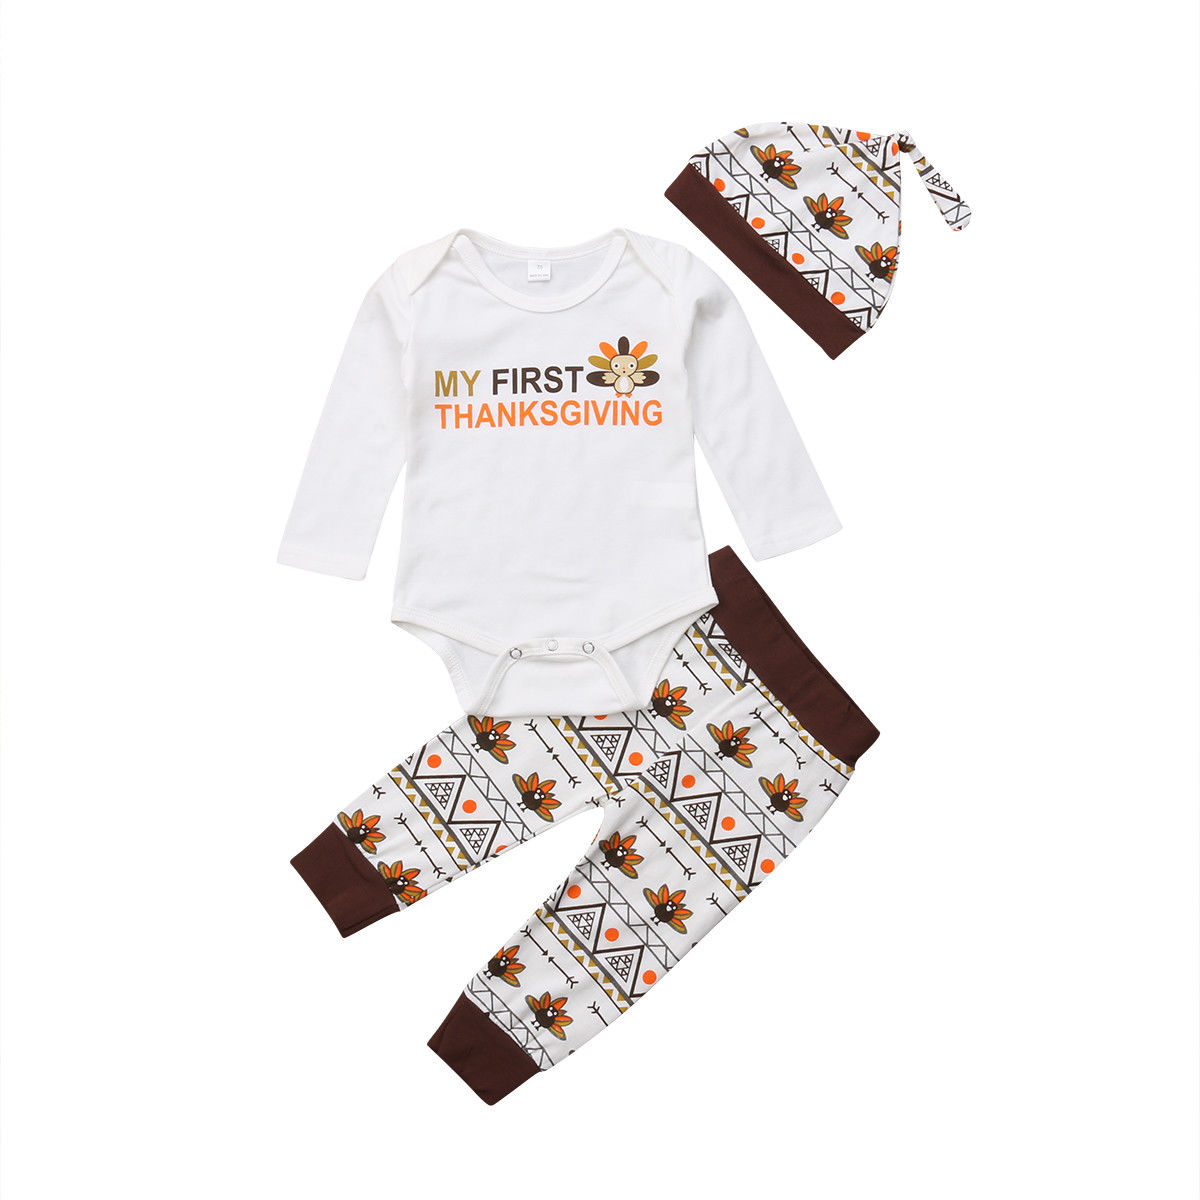 372b018f969 2019 Hot Turkey Thanksgiving Newborn Baby Boy Girl Romper Pants Hat Clothes Outfit  Set 0 18M-in Clothing Sets from Mother   Kids on Aliexpress.com